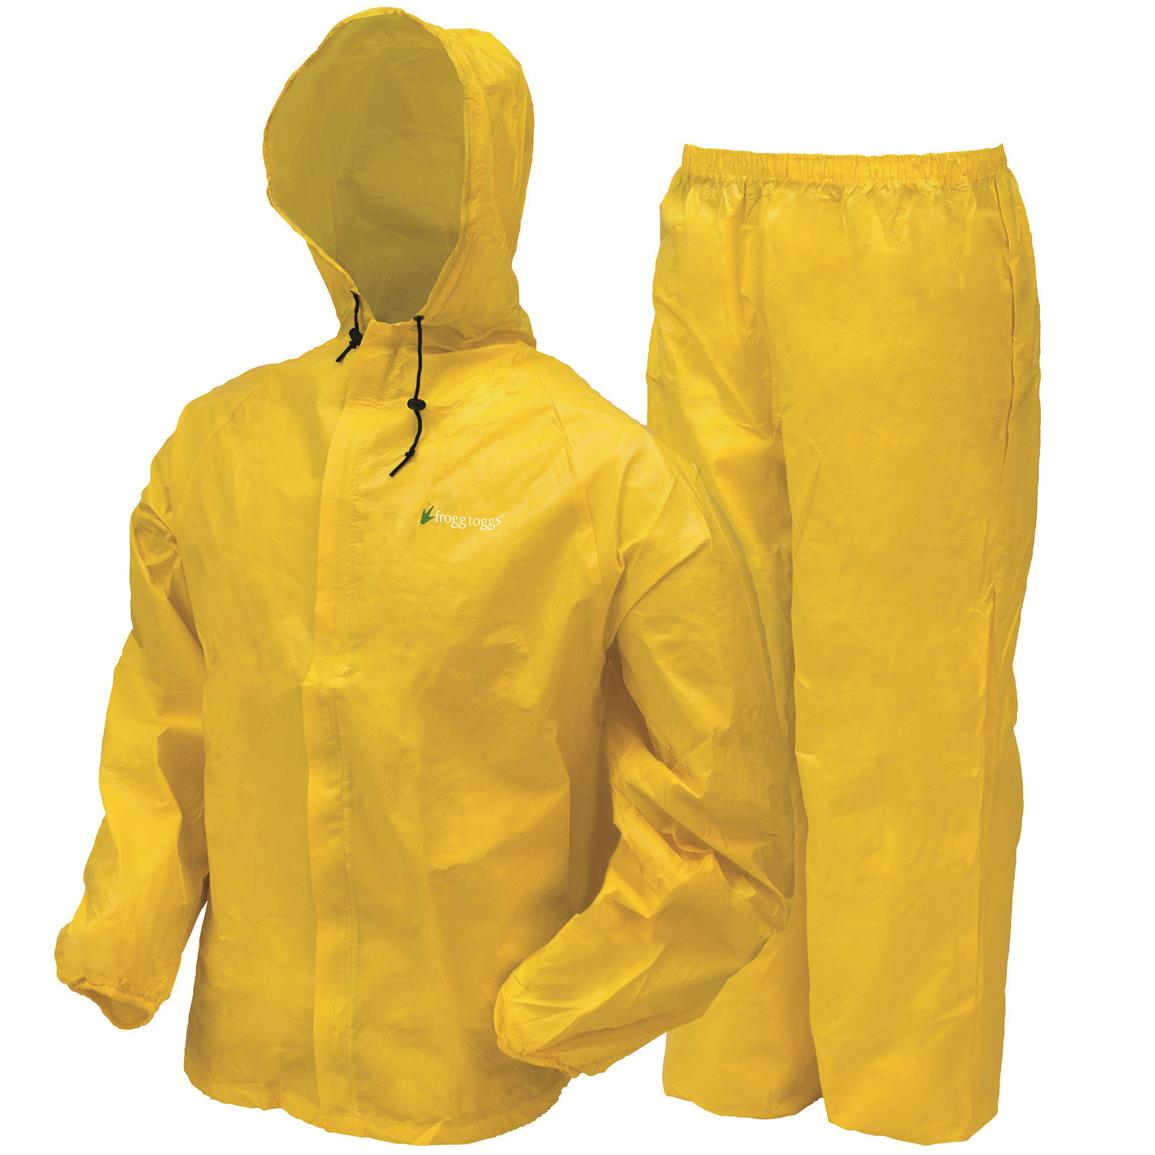 frogg toggs Kids' Waterproof Ultra Lite Rain Suit, 2 Piece, Bright Yellow